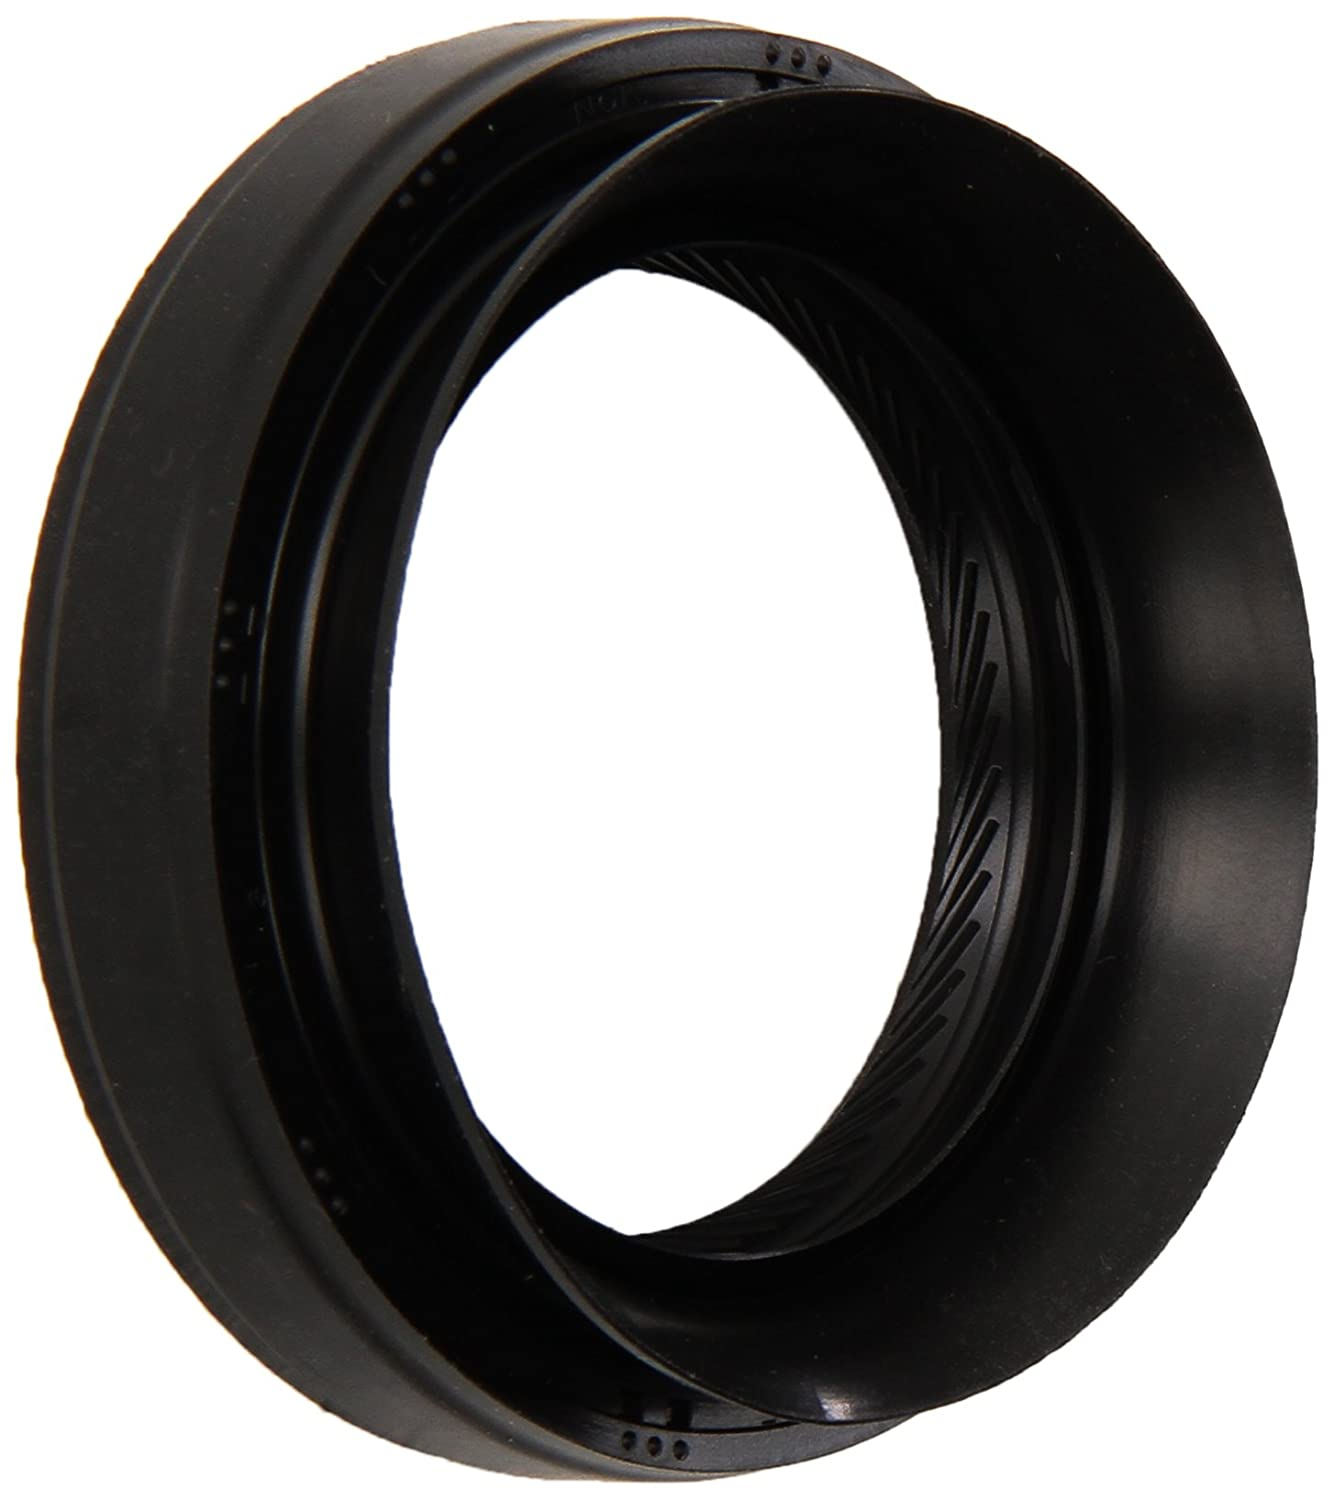 Killer Filter Replacement for HY-PRO HP95RNL1450WV